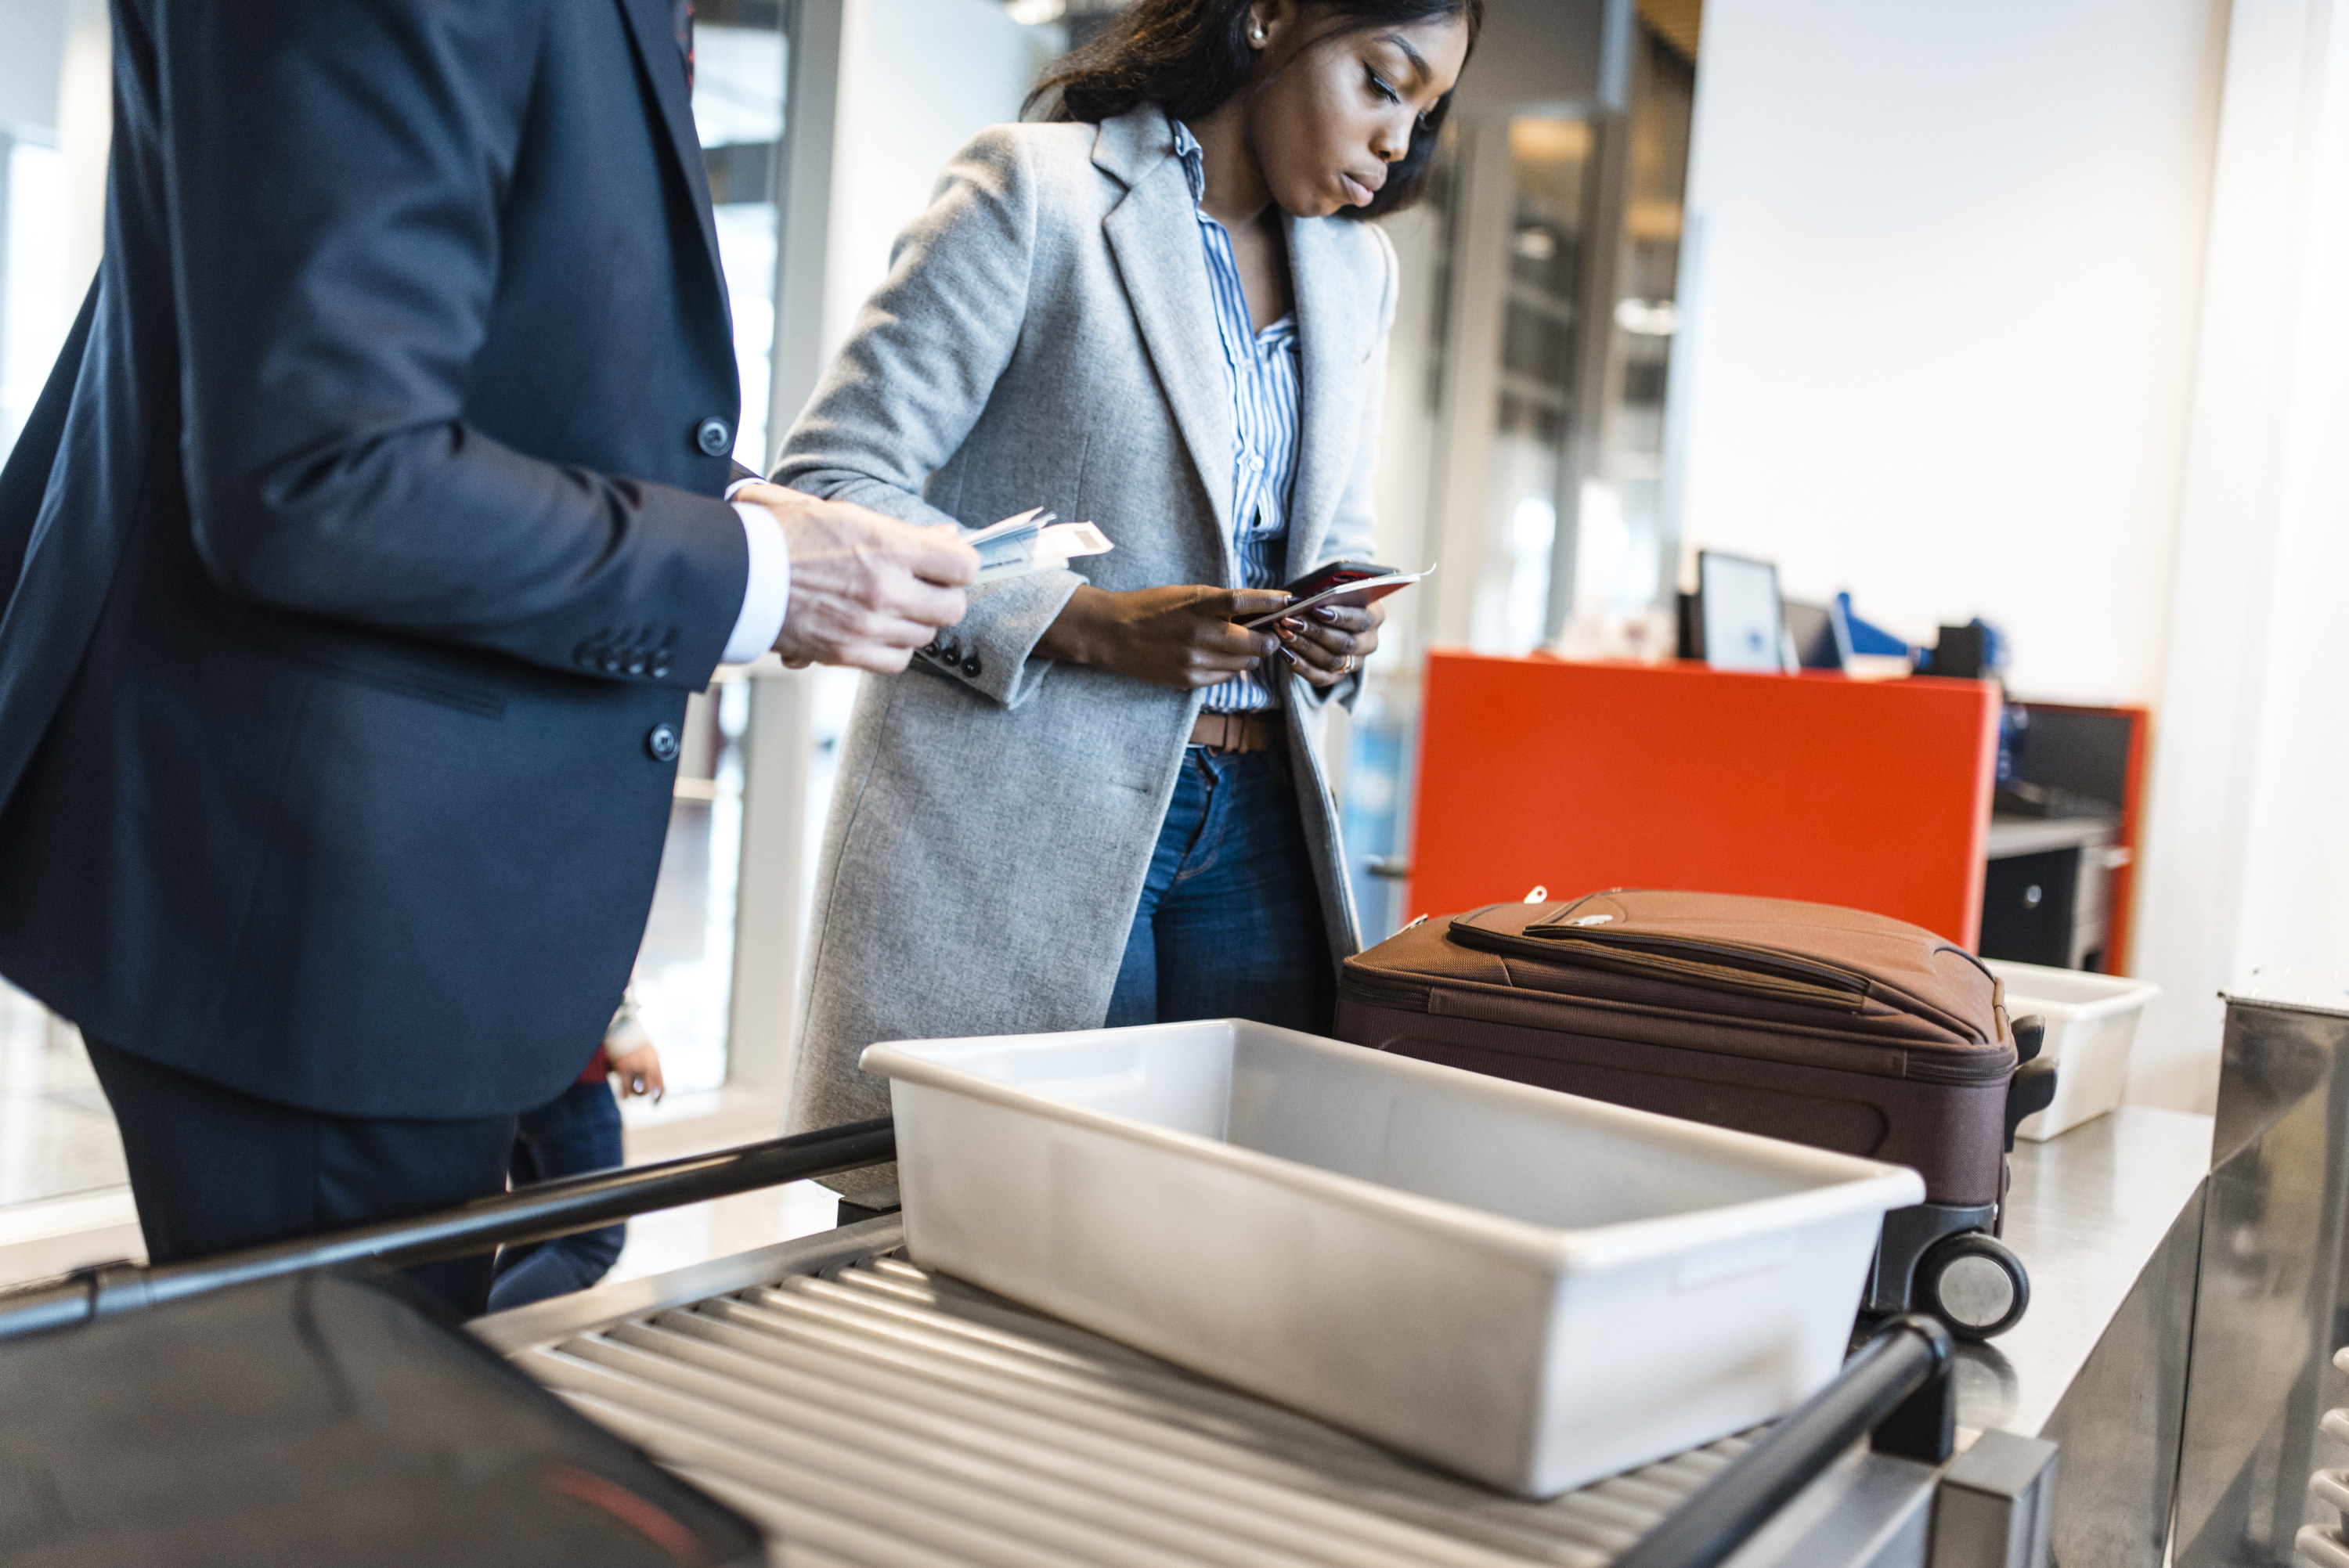 Two people putting their items in bins for airport security